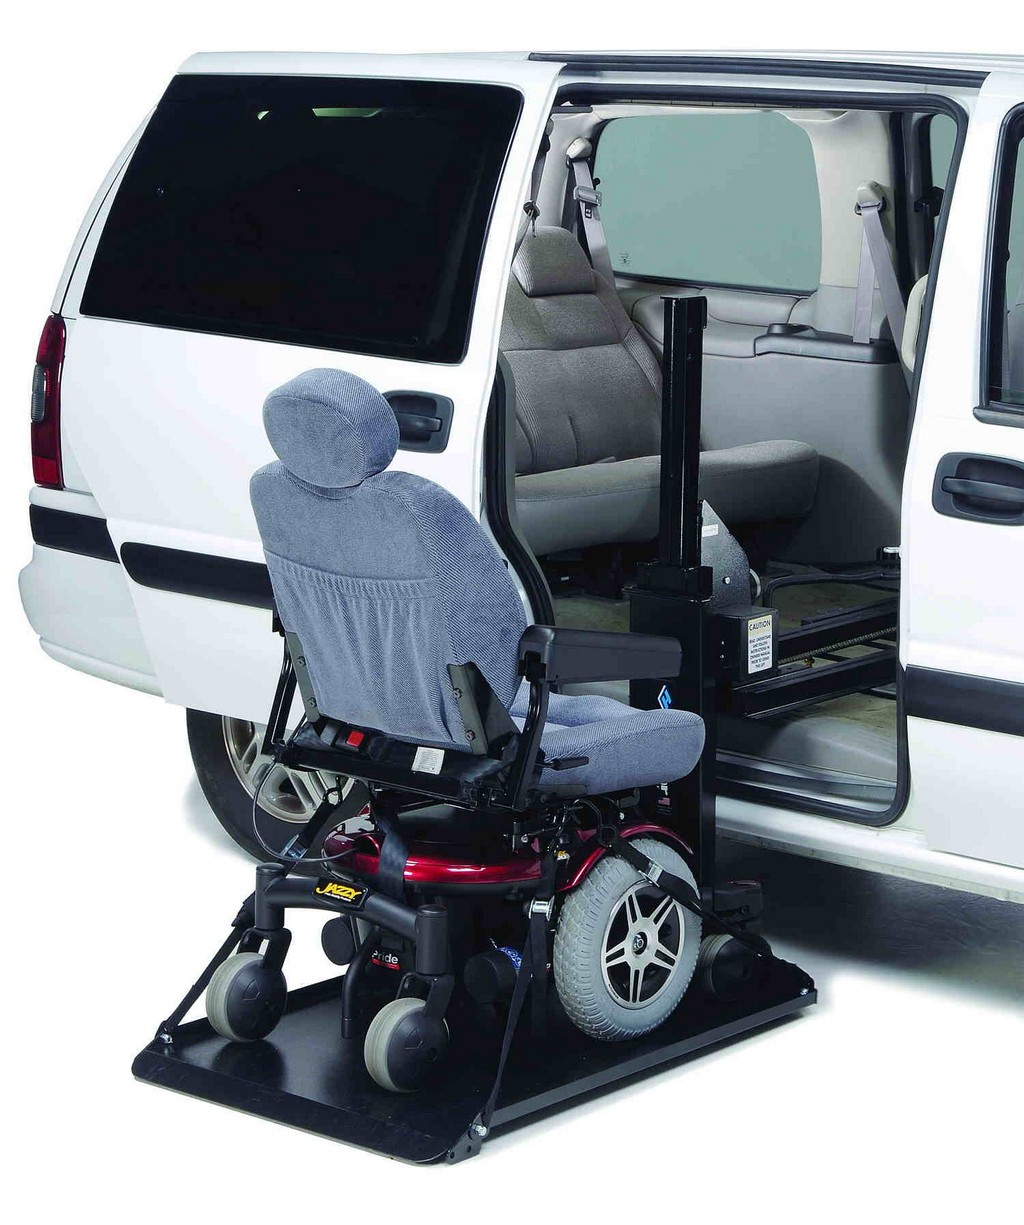 vertical wheelchair lift, handicap van with wheelchair lift, used wheelchair power lifts, wheelchair lifts for trucks